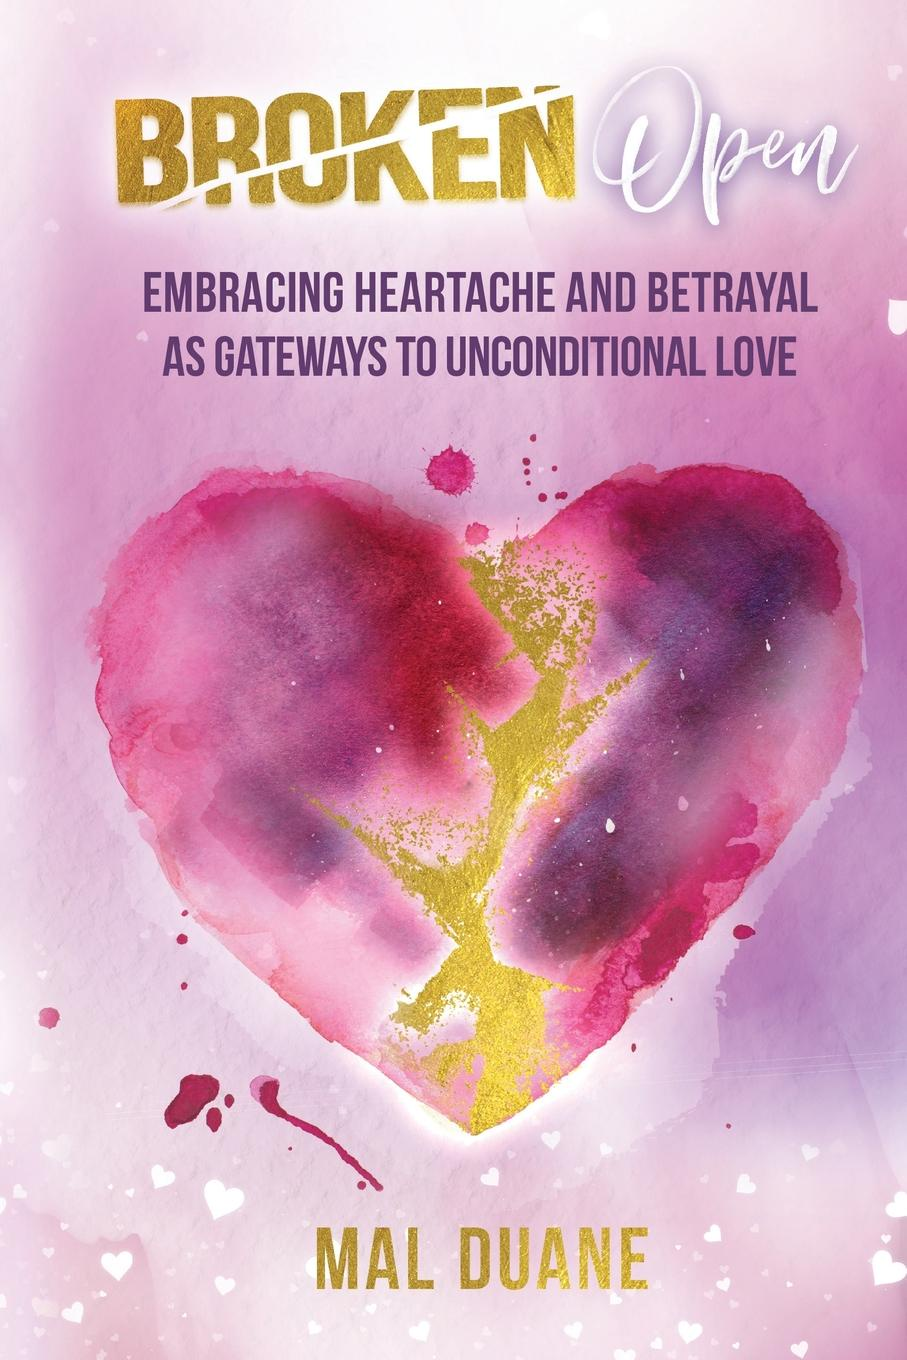 Mal Duane Broken Open. Embracing Heartache . Betrayal as Gateways to Unconditional Love learning to live the love we promise